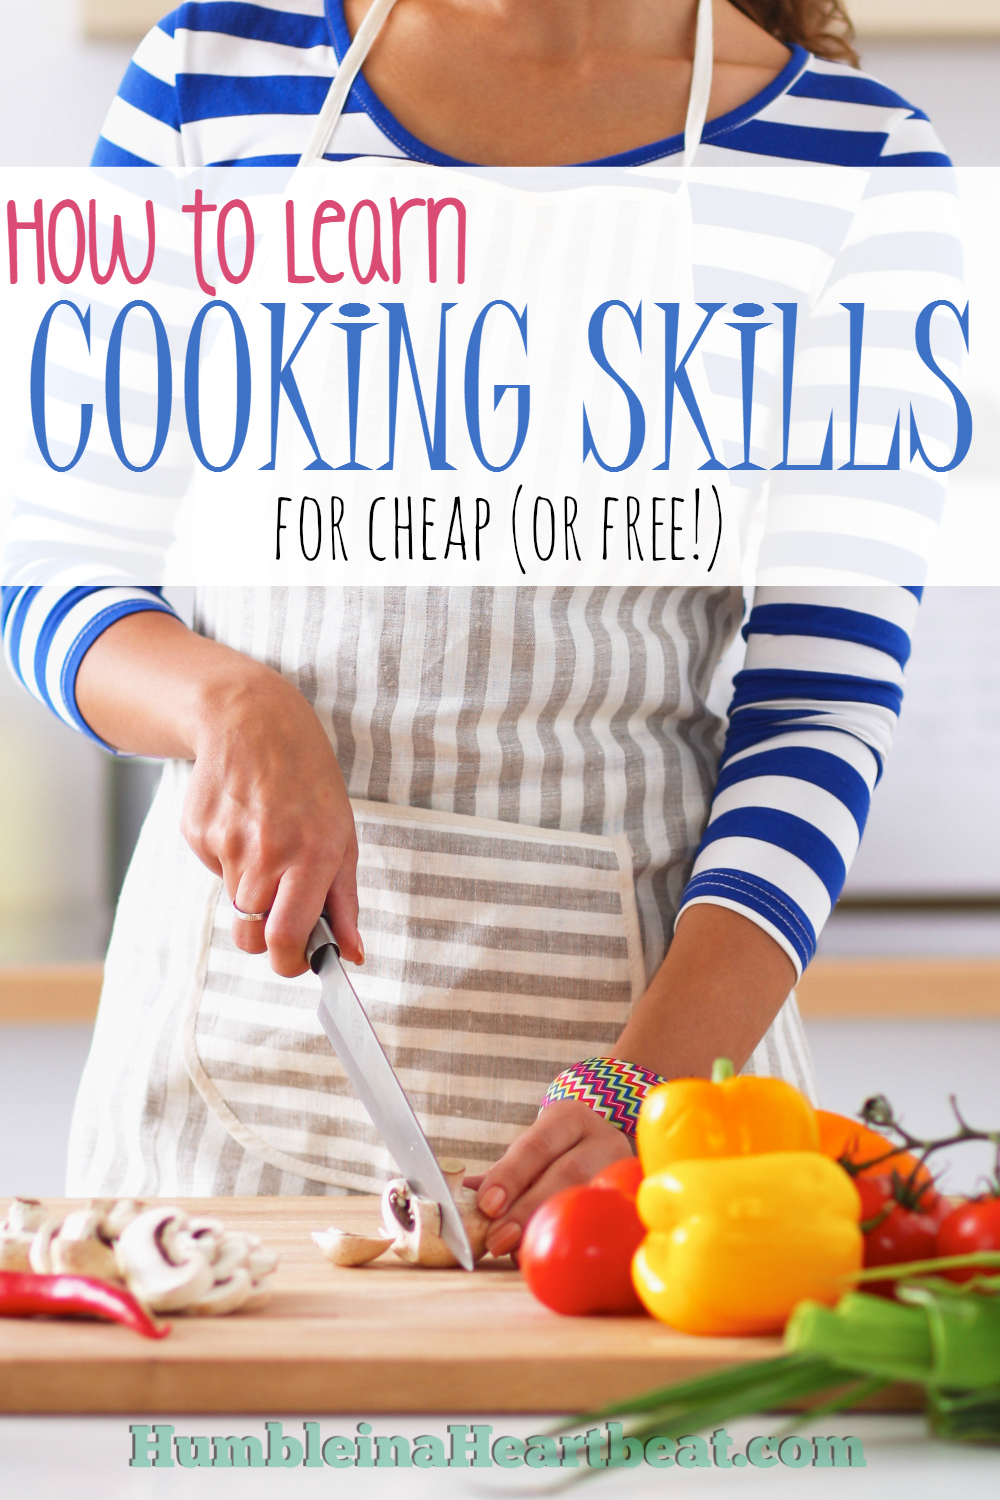 There are so many ways you can learn how to cook from the comfort of your own home. All of the resources mentioned are either free or extremely cheap.